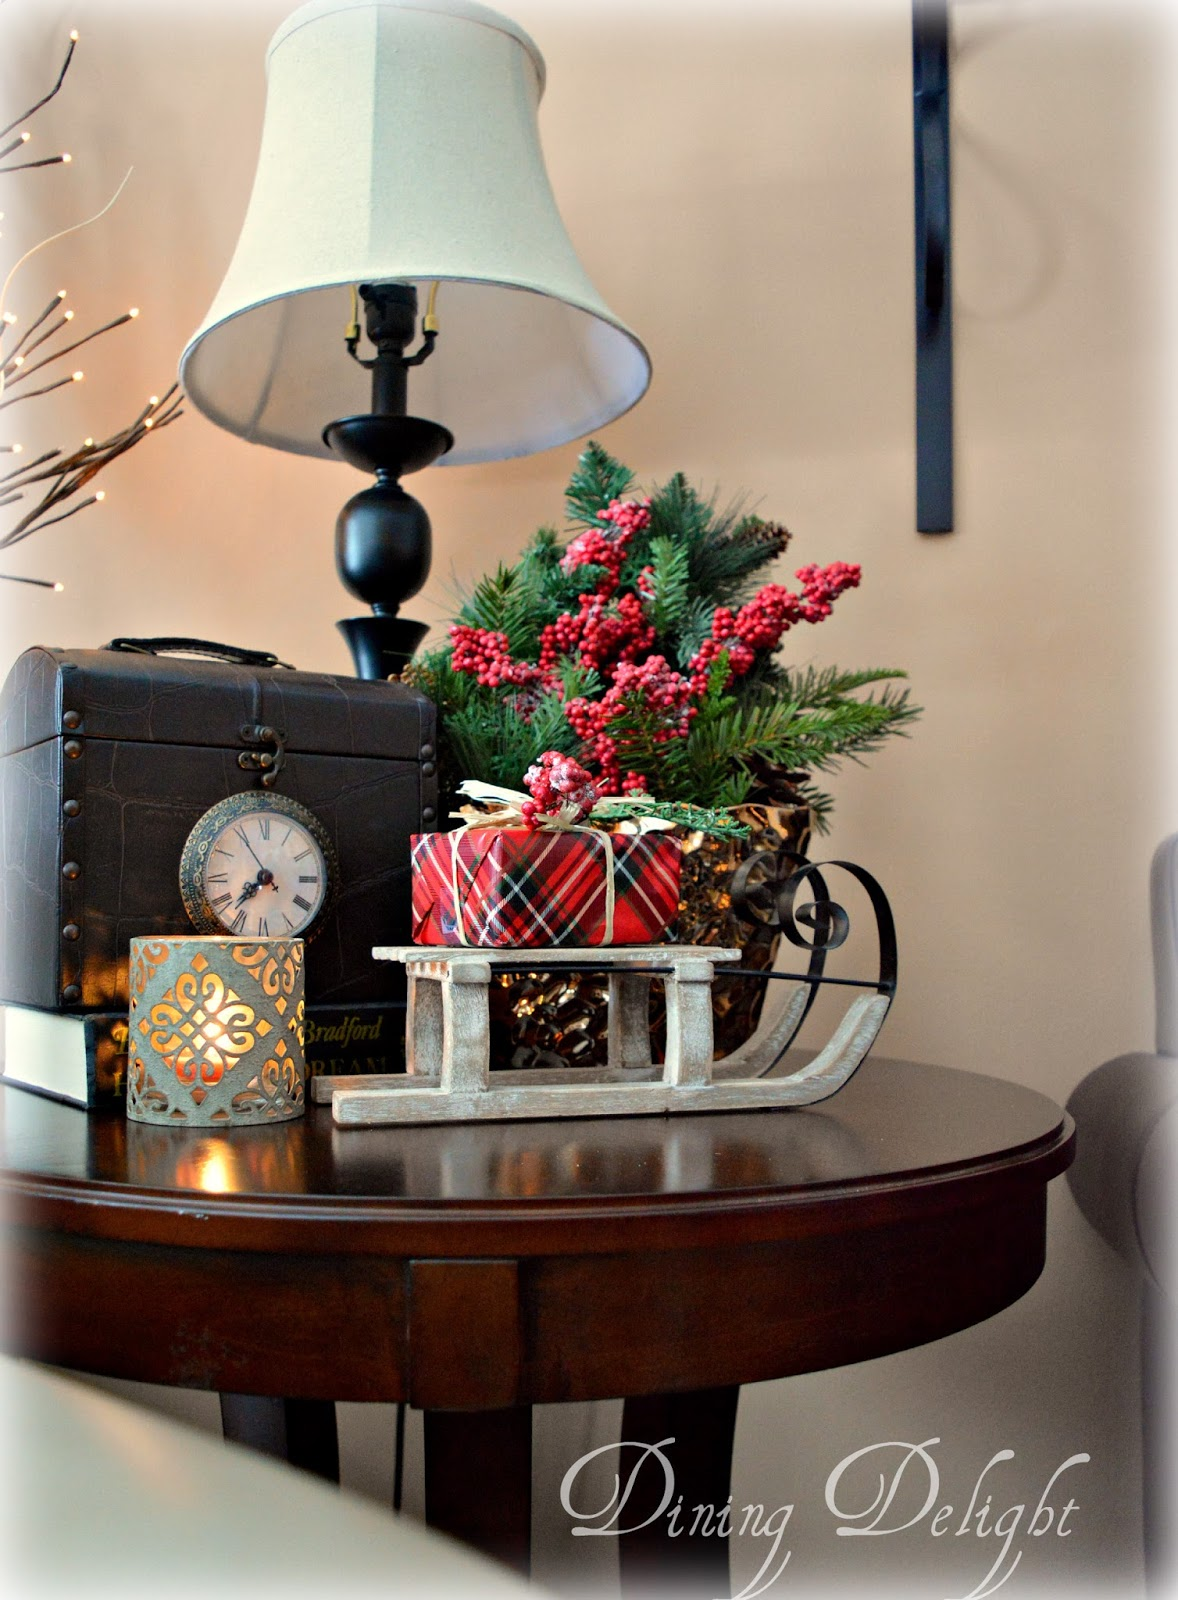 Best Dining Delight Christmas Decor For End Tables This Month